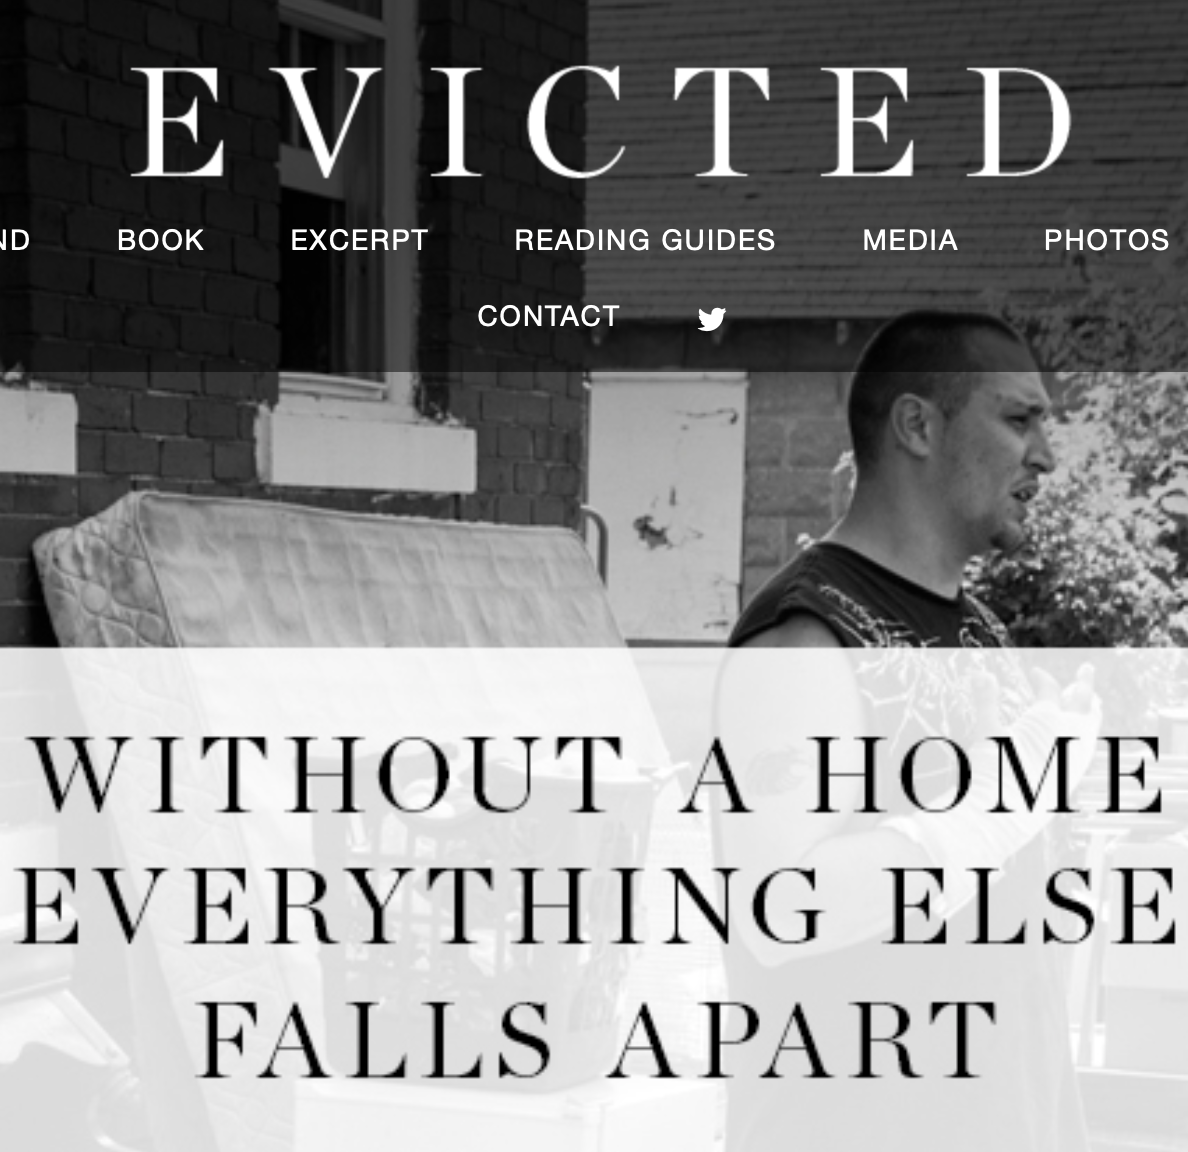 Evicted website https://www.evictedbook.com screen shot. Without a Home Everything Else Falls Apart.